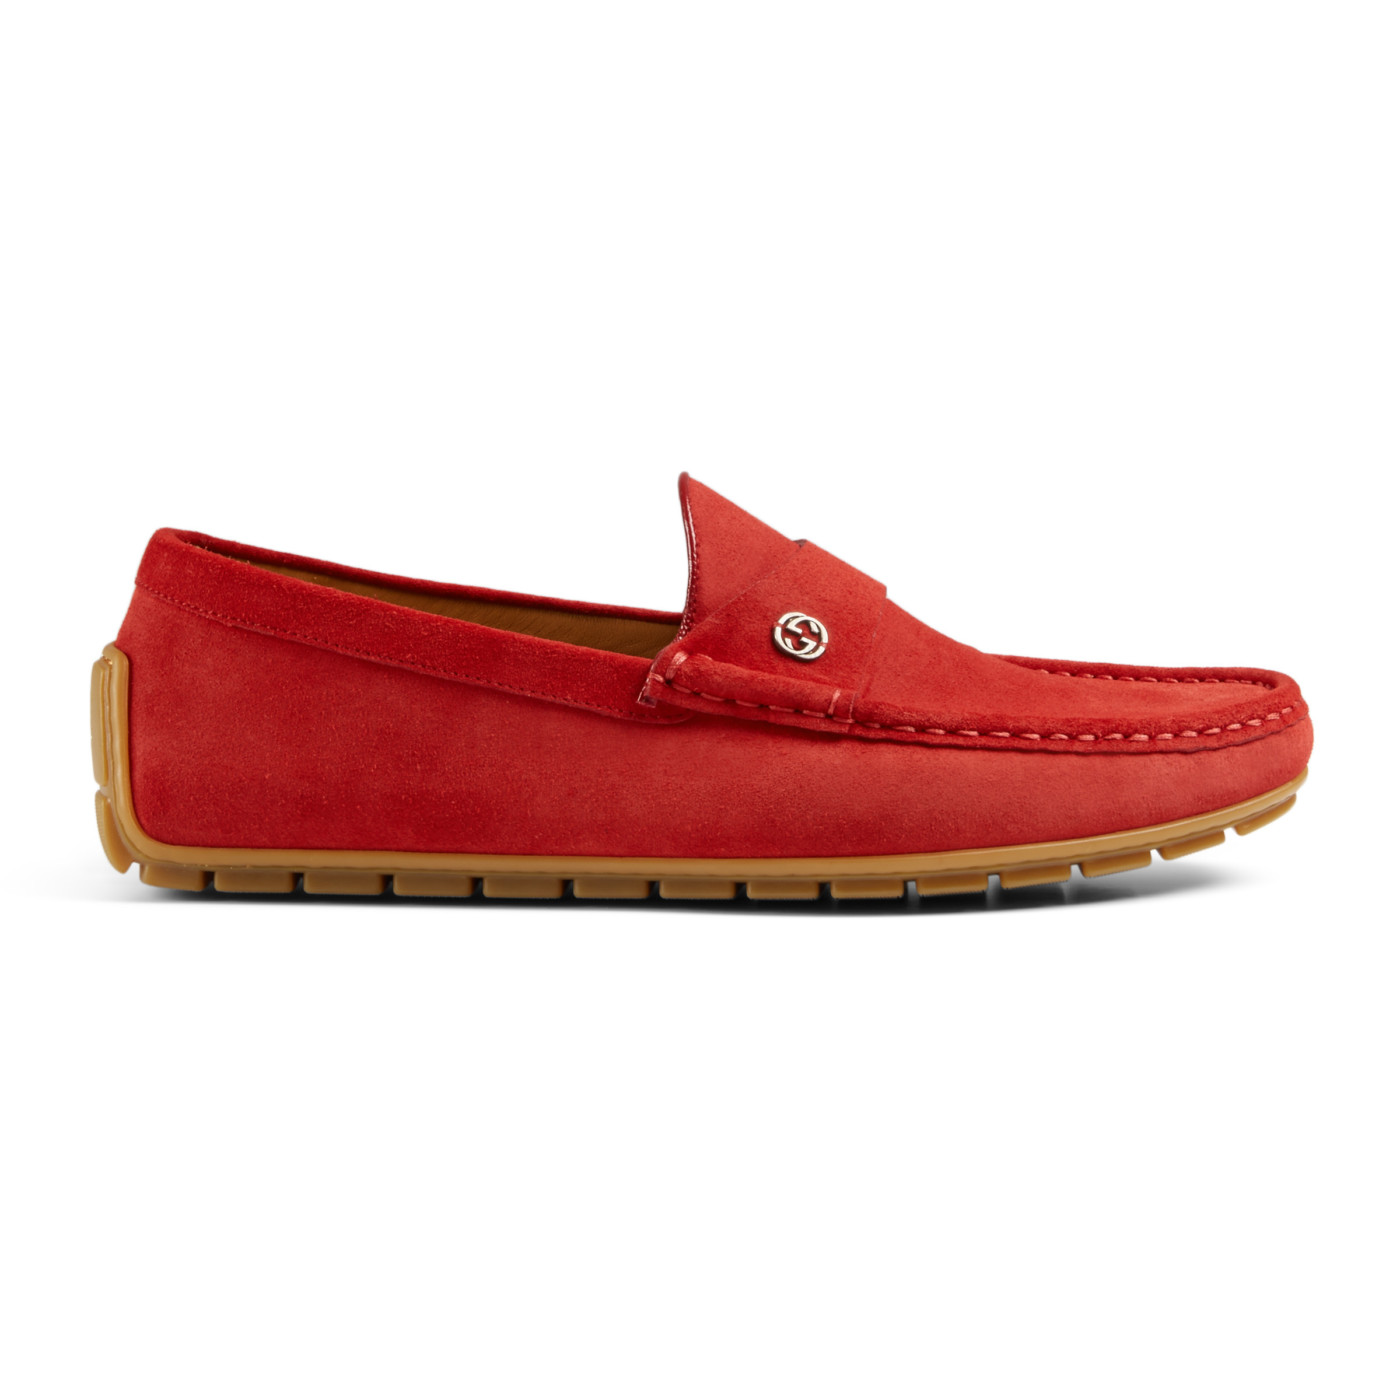 70e69cf589794 Gucci Men s Full Bottom Red Suede Driver Moccasin Loafer Shoes